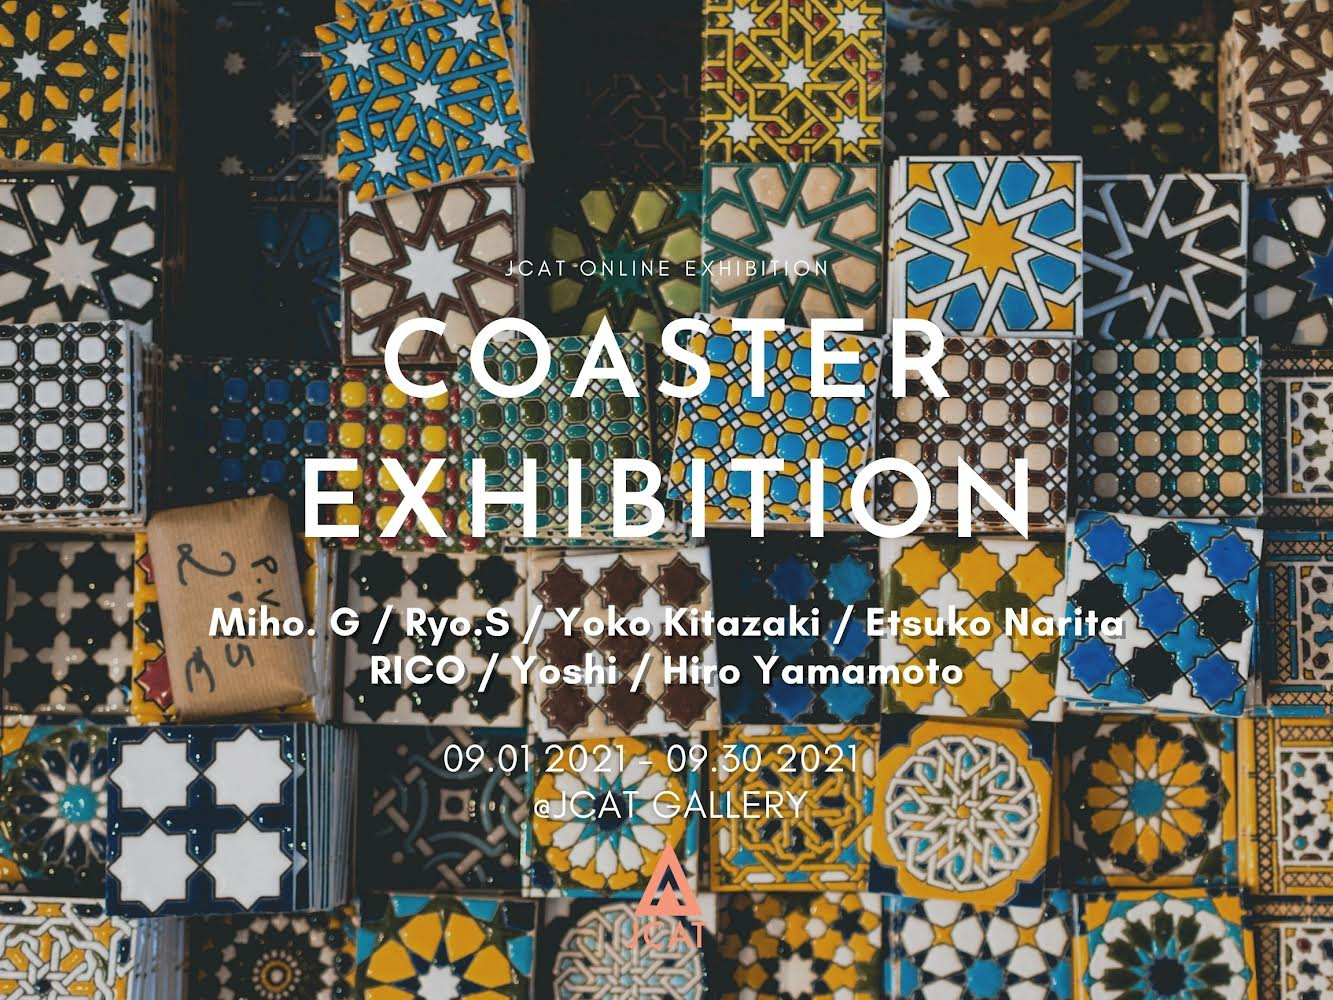 Coaster Exhibition by JCAT Gallery New York Best Online Exhibitions and Art Store Shop Art for sale by artists